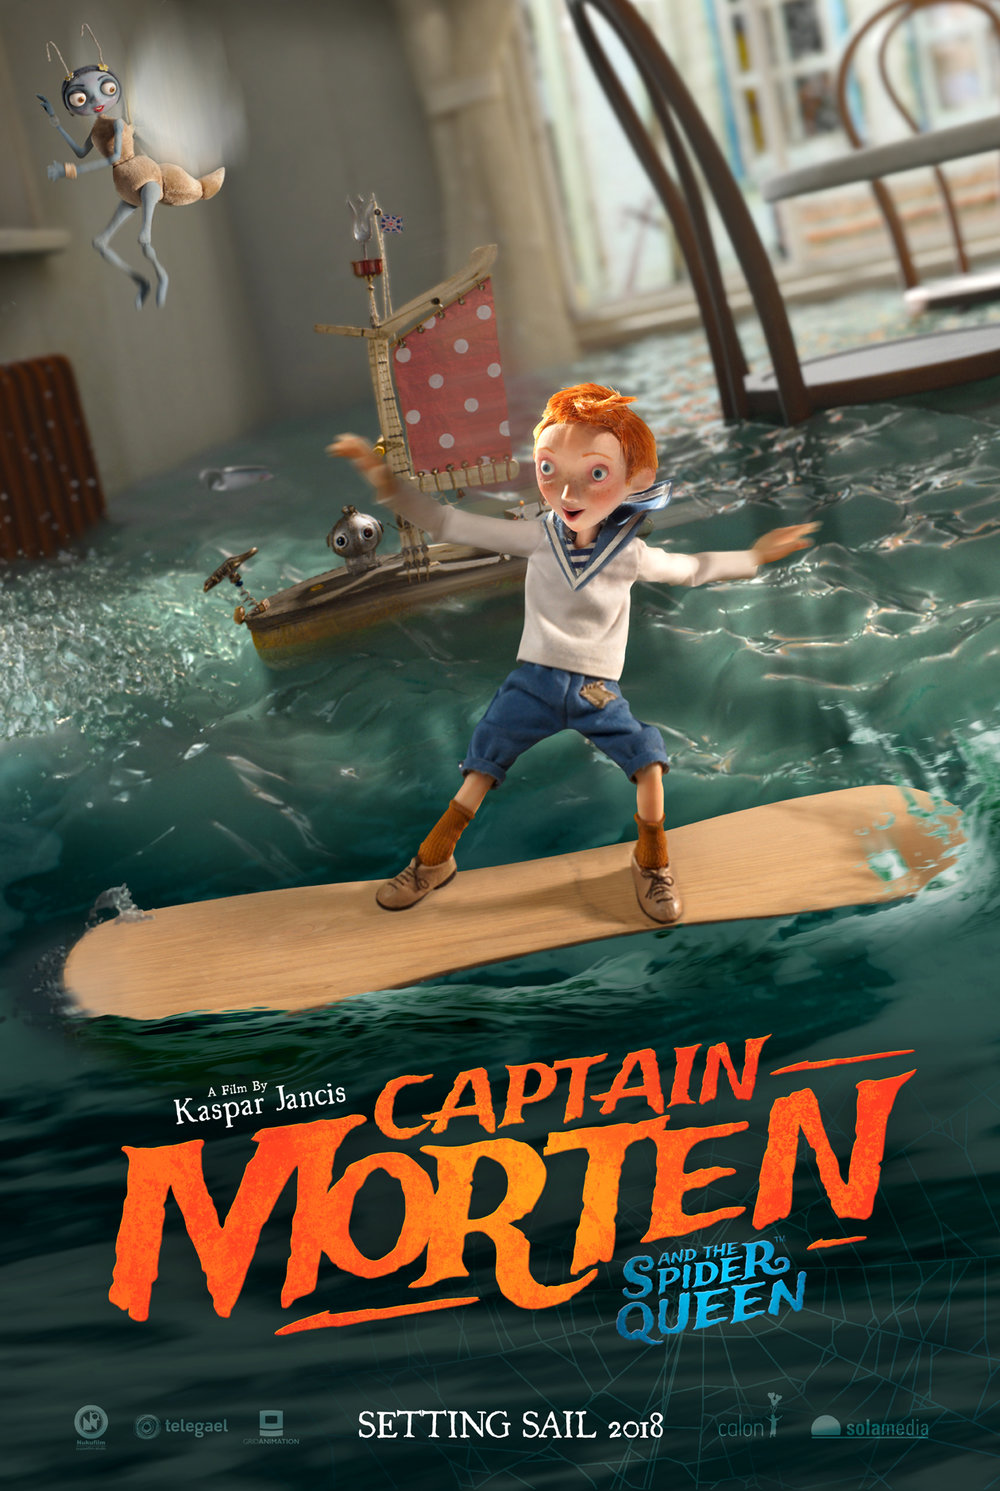 Captain_Morten_And_The_Spider_Queen_Poster_English (2).jpg